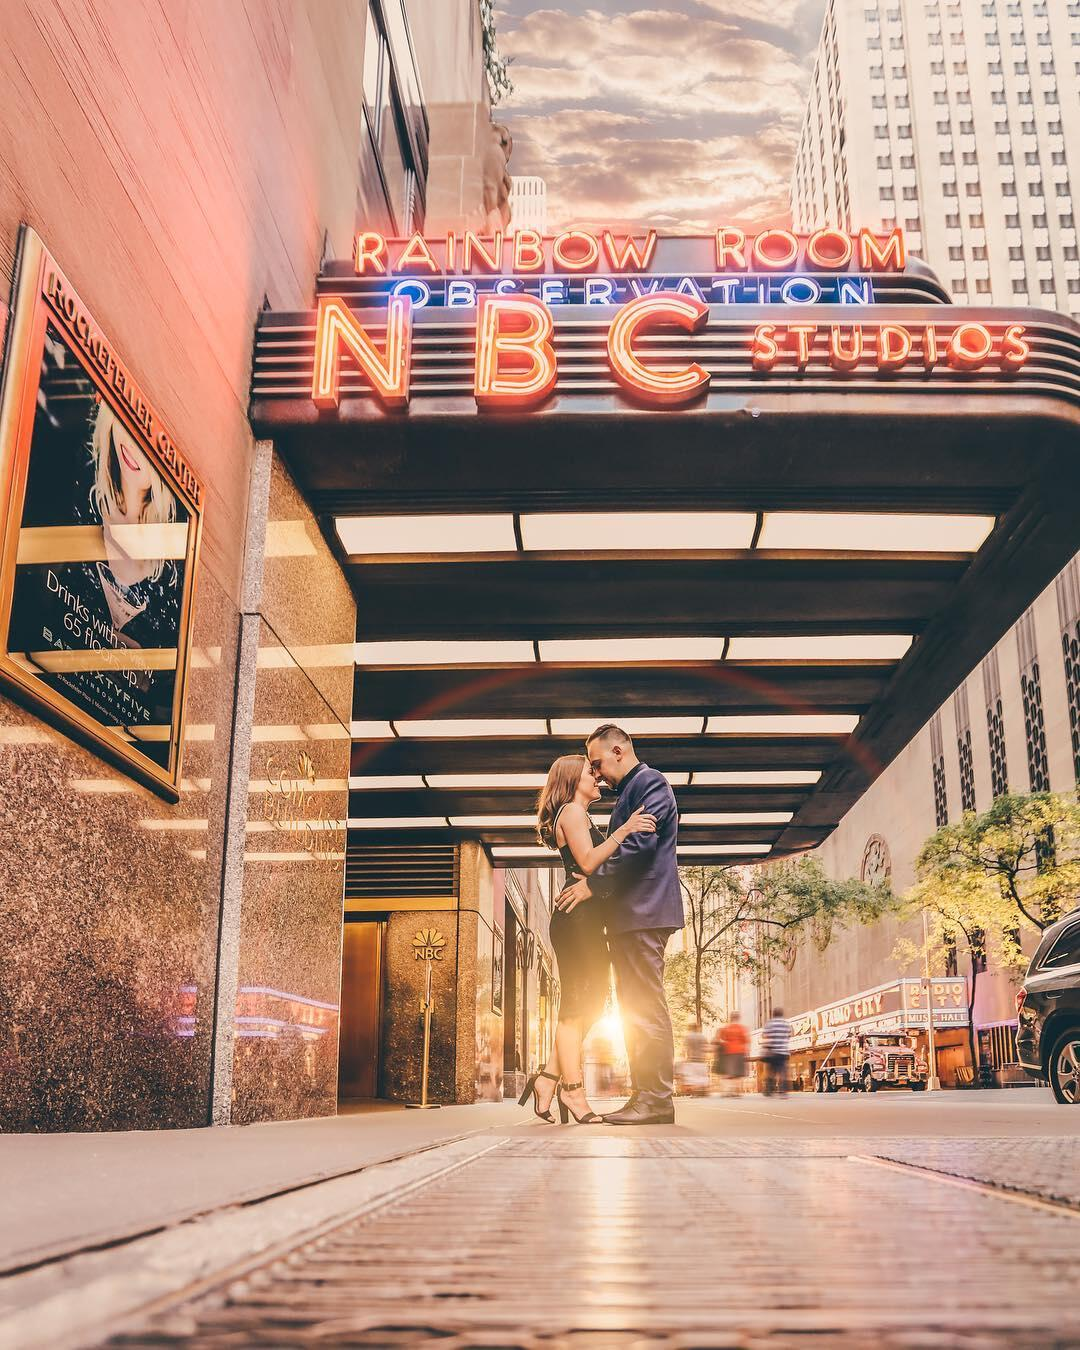 engagement session outside the rainbow room and nbc studios in new york city